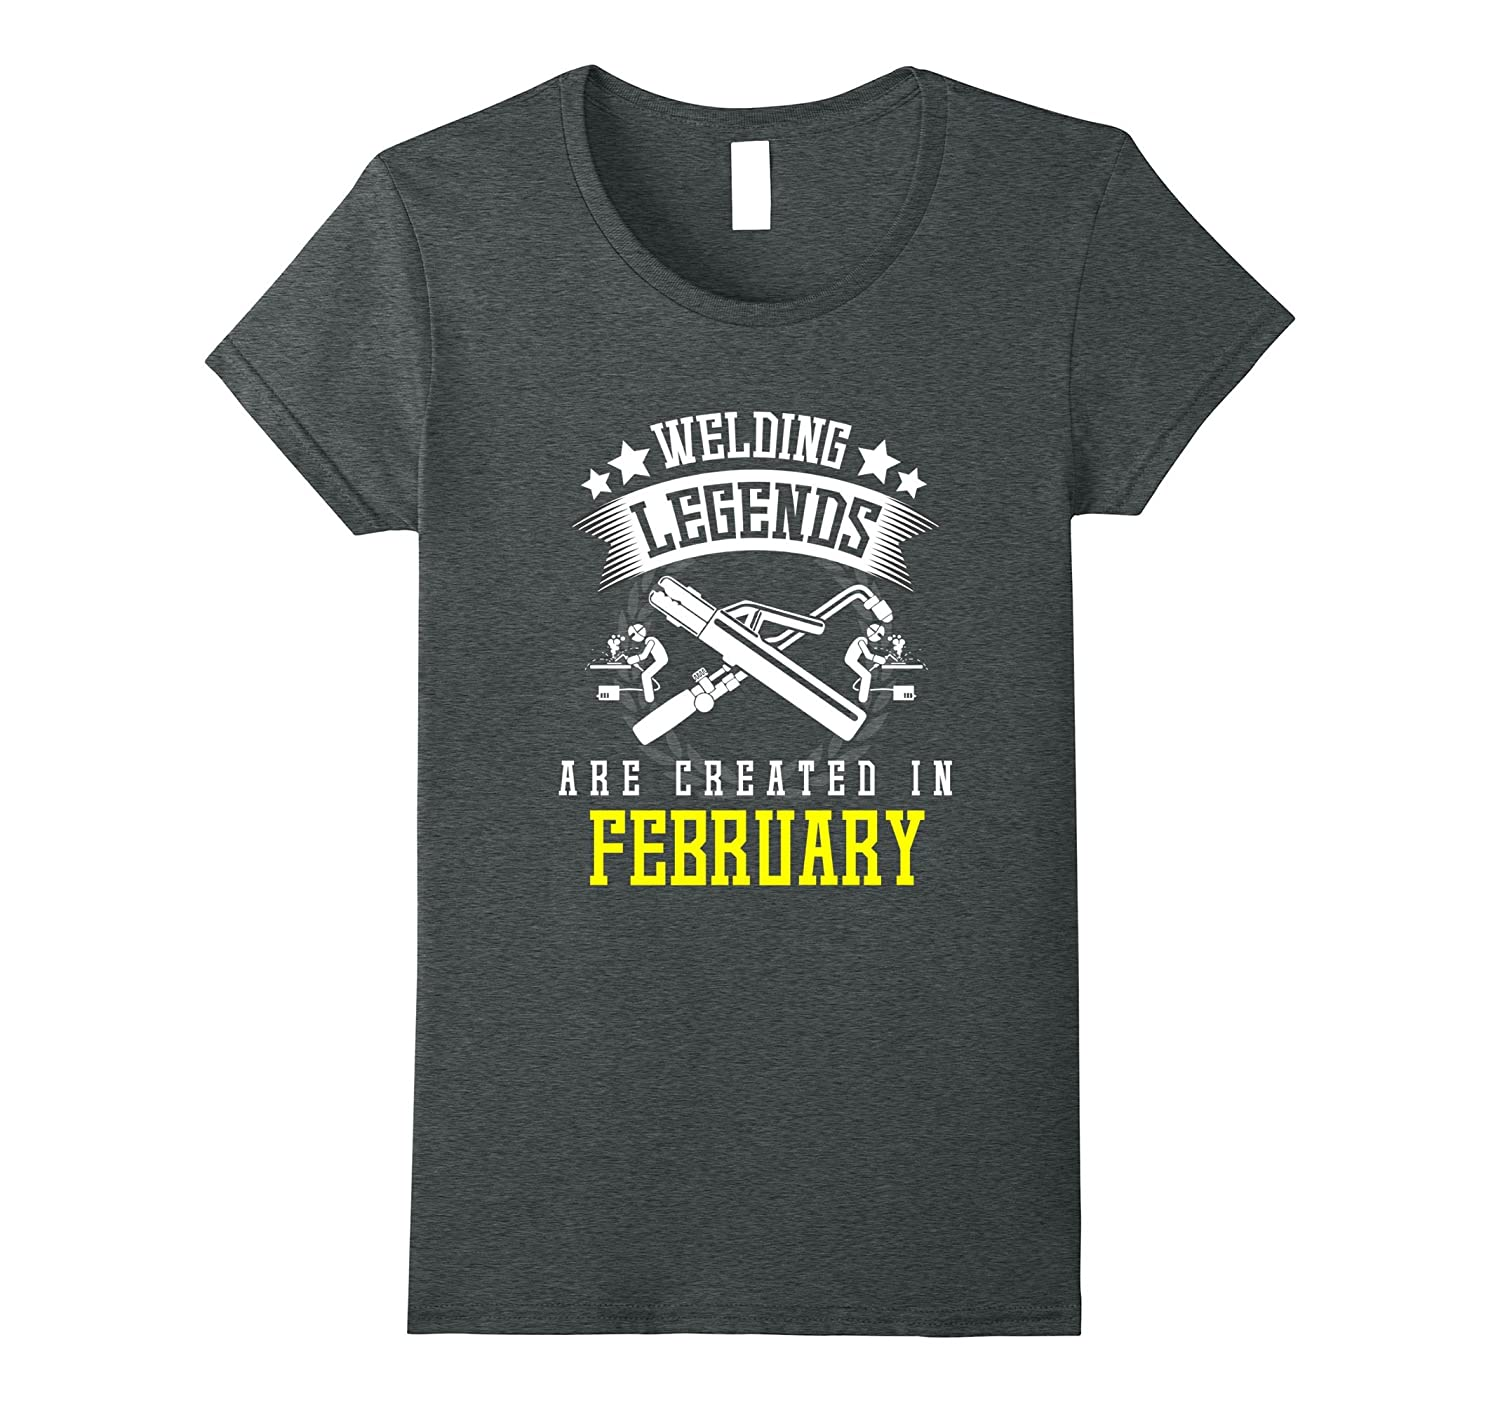 Funny Welding Legends Are Created In February T-shirt Welder